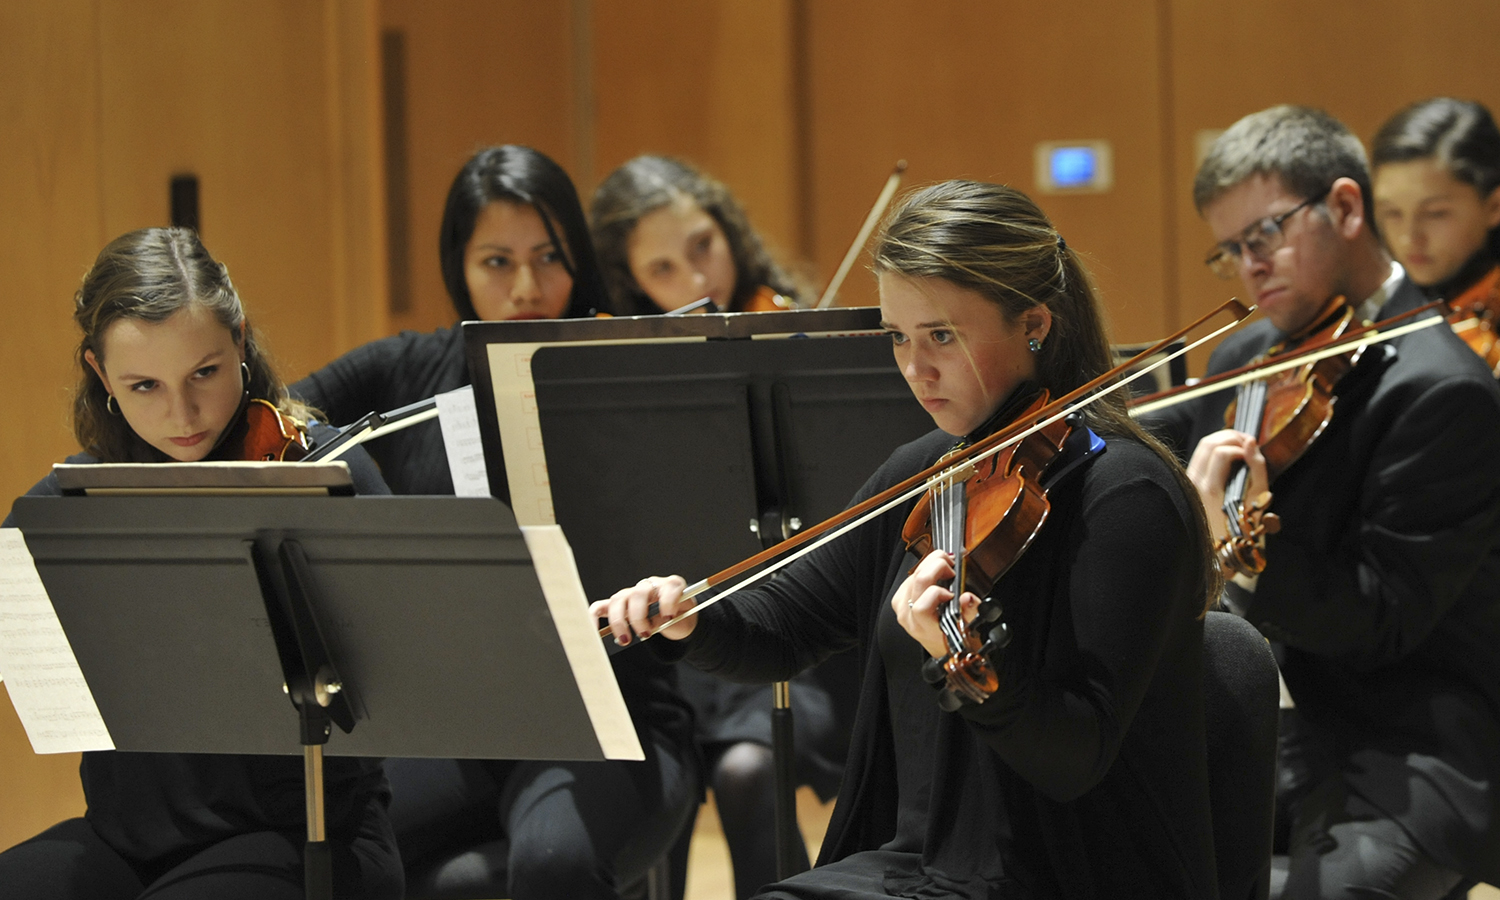 Caitriona Carey '18 performs during an HWS String Ensemble concert.